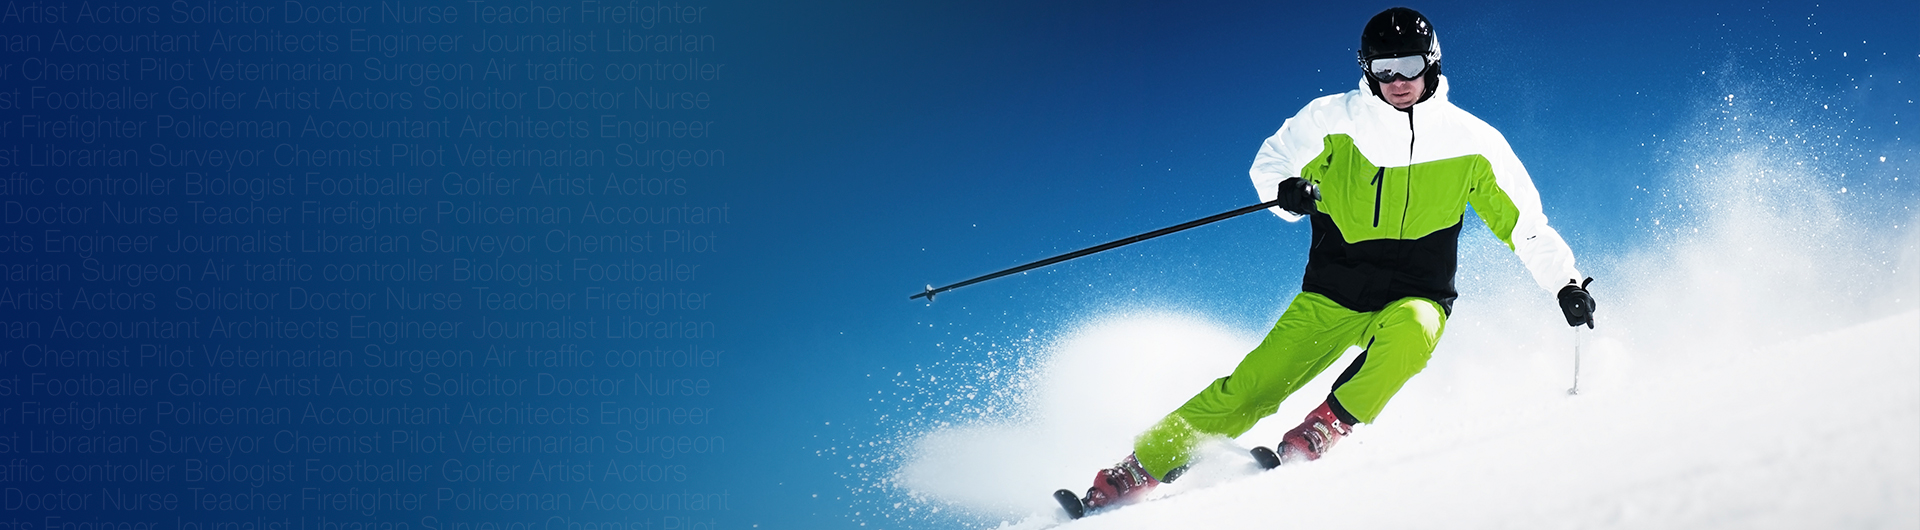 The Invisible Hearing Clinic - Skiing